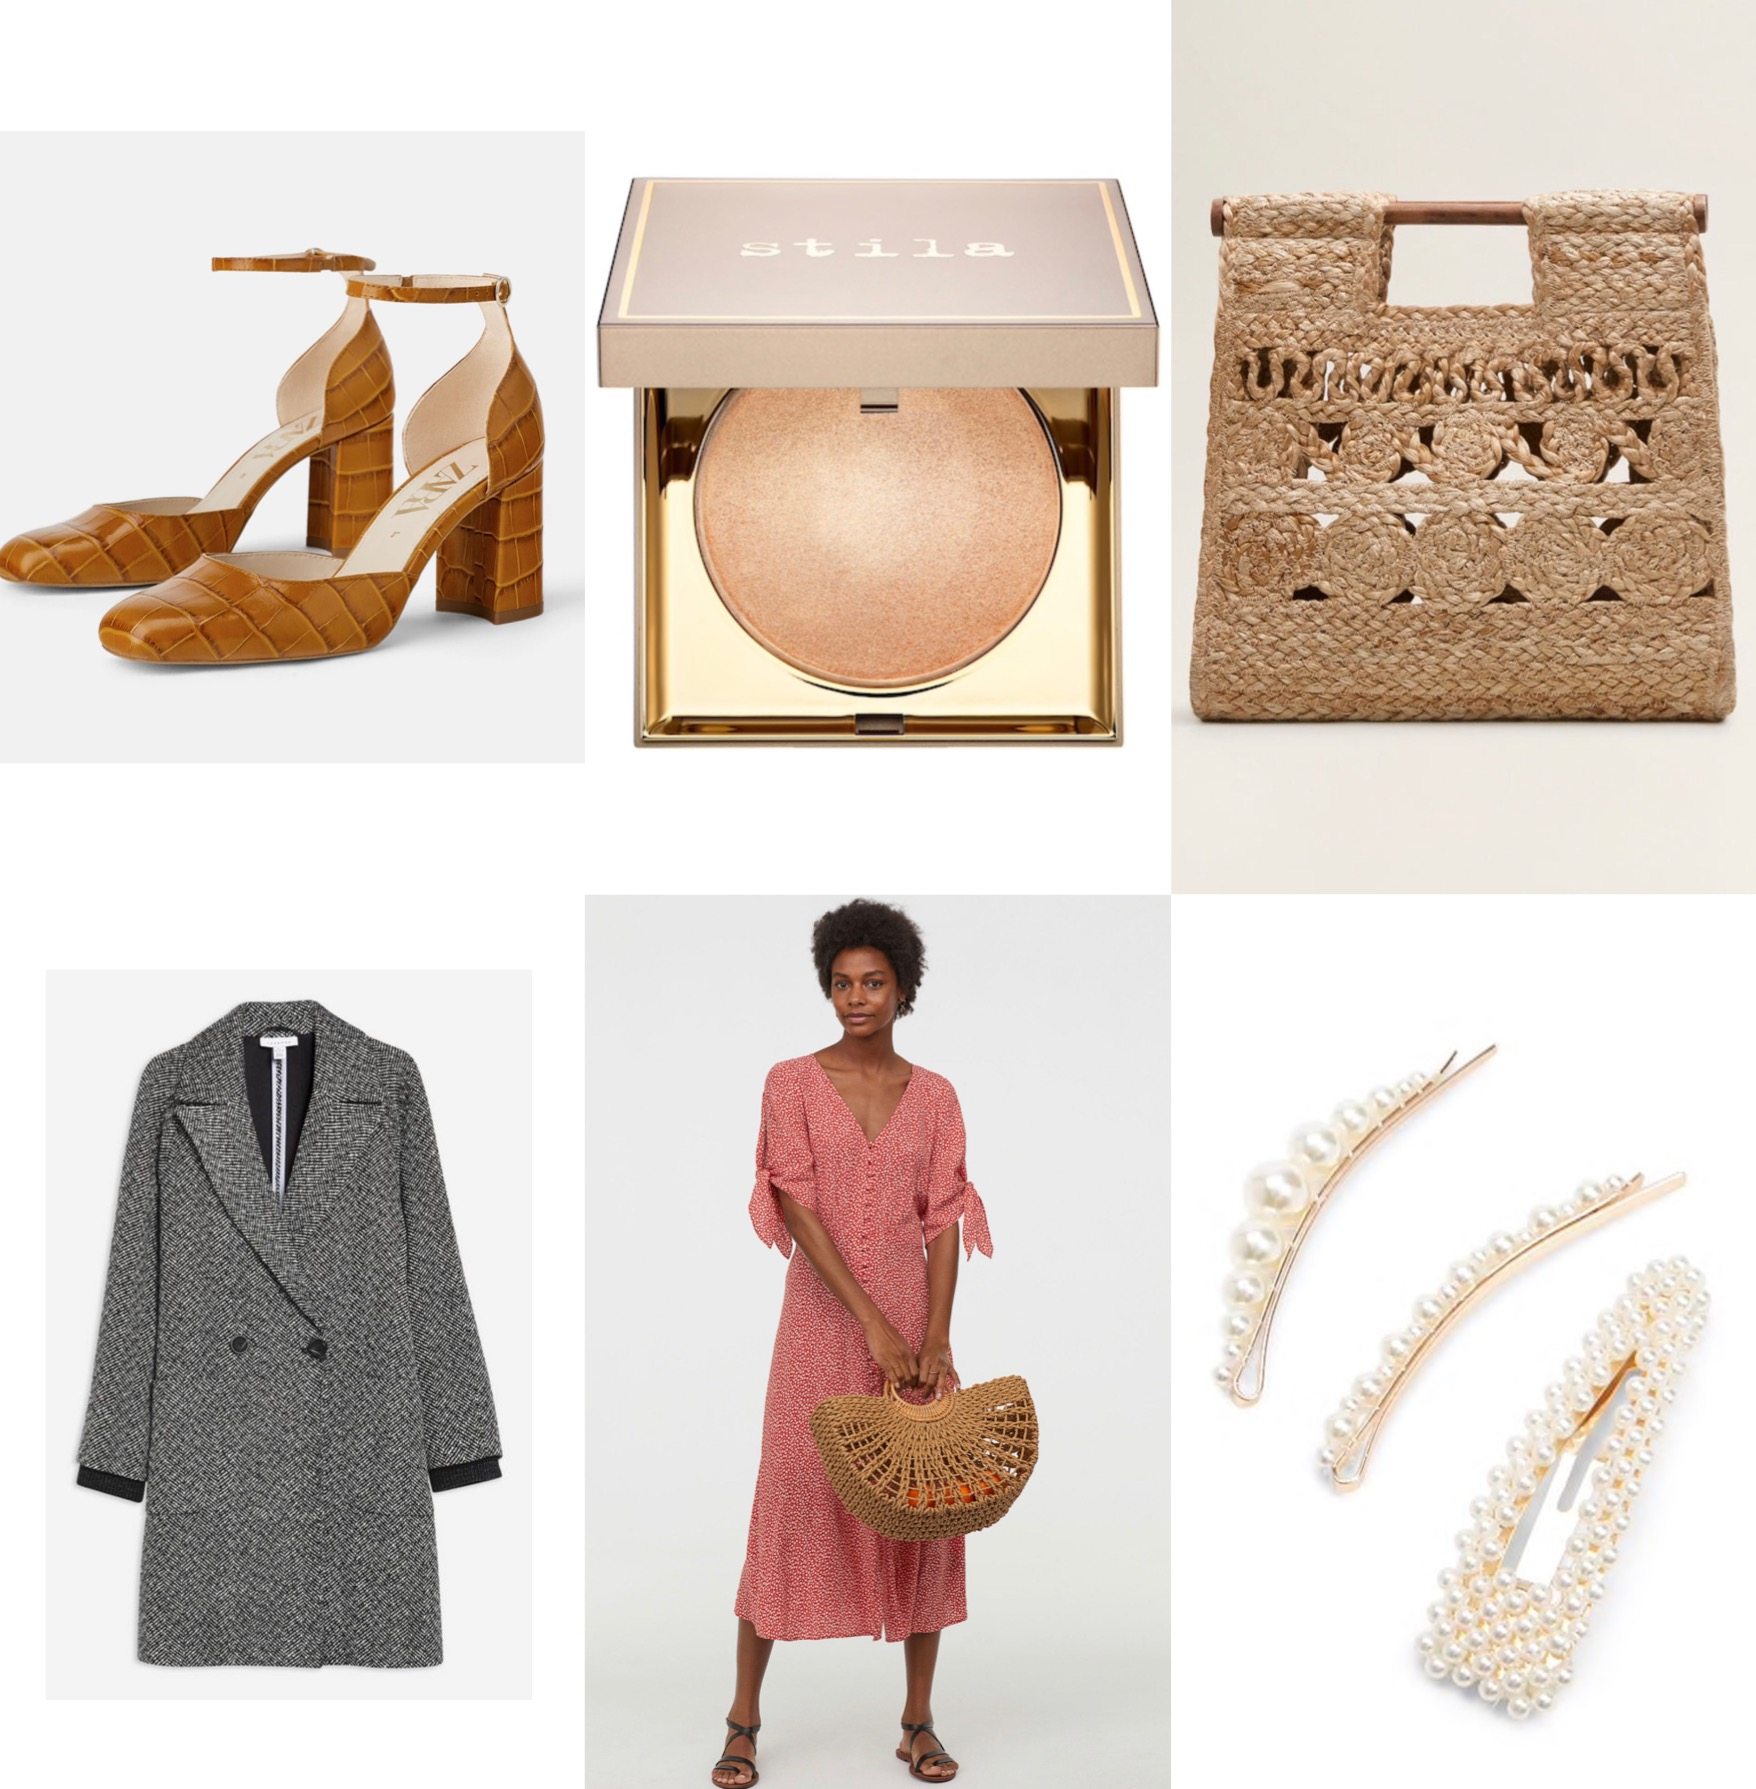 Weekly picks: - New items that are currently on my wishlist!1. Leather Animal Embossed Heeled Shoes2. Stila Heaven's Hue Highlighter in Brilliance3. Jute Handbag4. Herringboat Coat5.Creped Dress6.Faux Pearl- Embellished Hair Clip Set